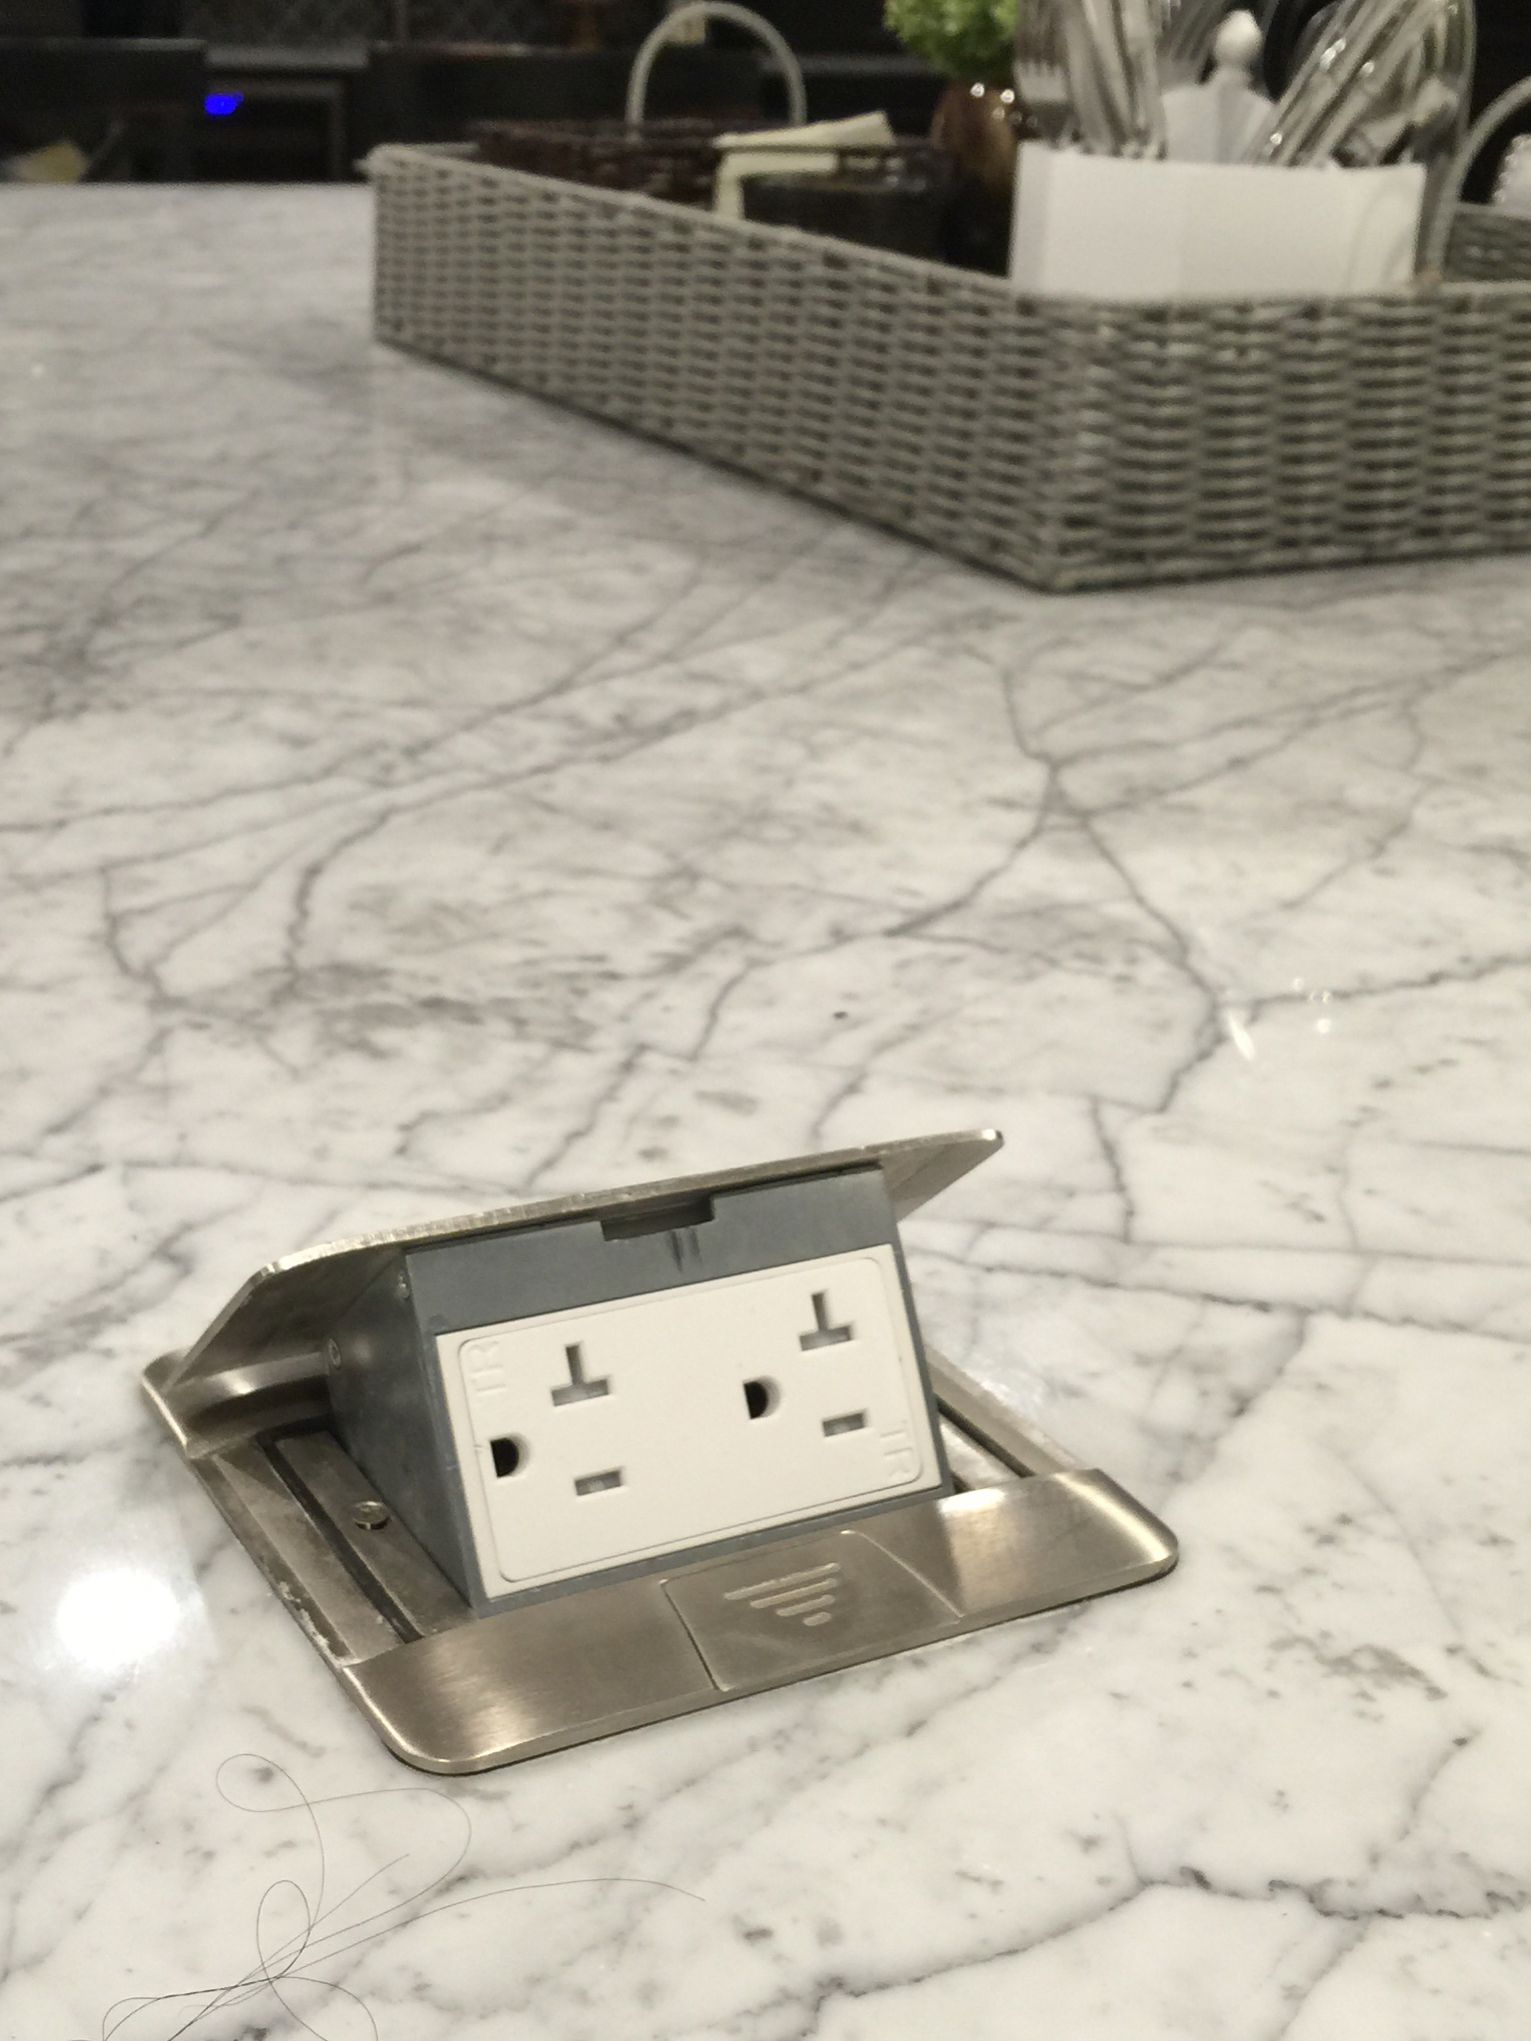 Pop up island electric outlets perfect for plug in griddle